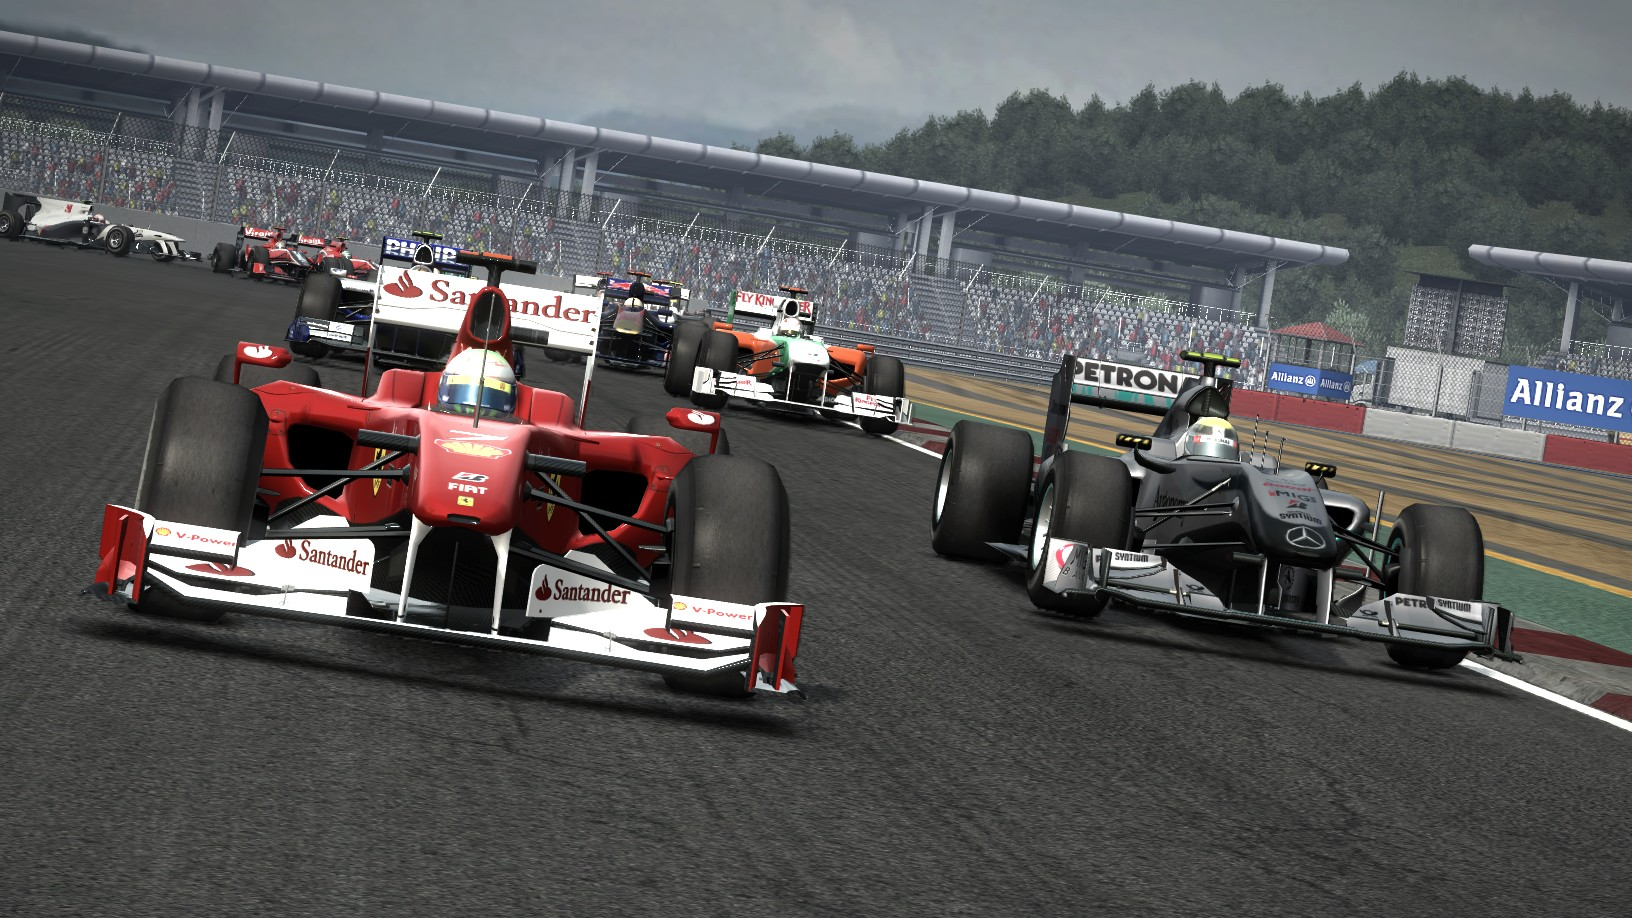 F1 2010 Playstation 3 | 14